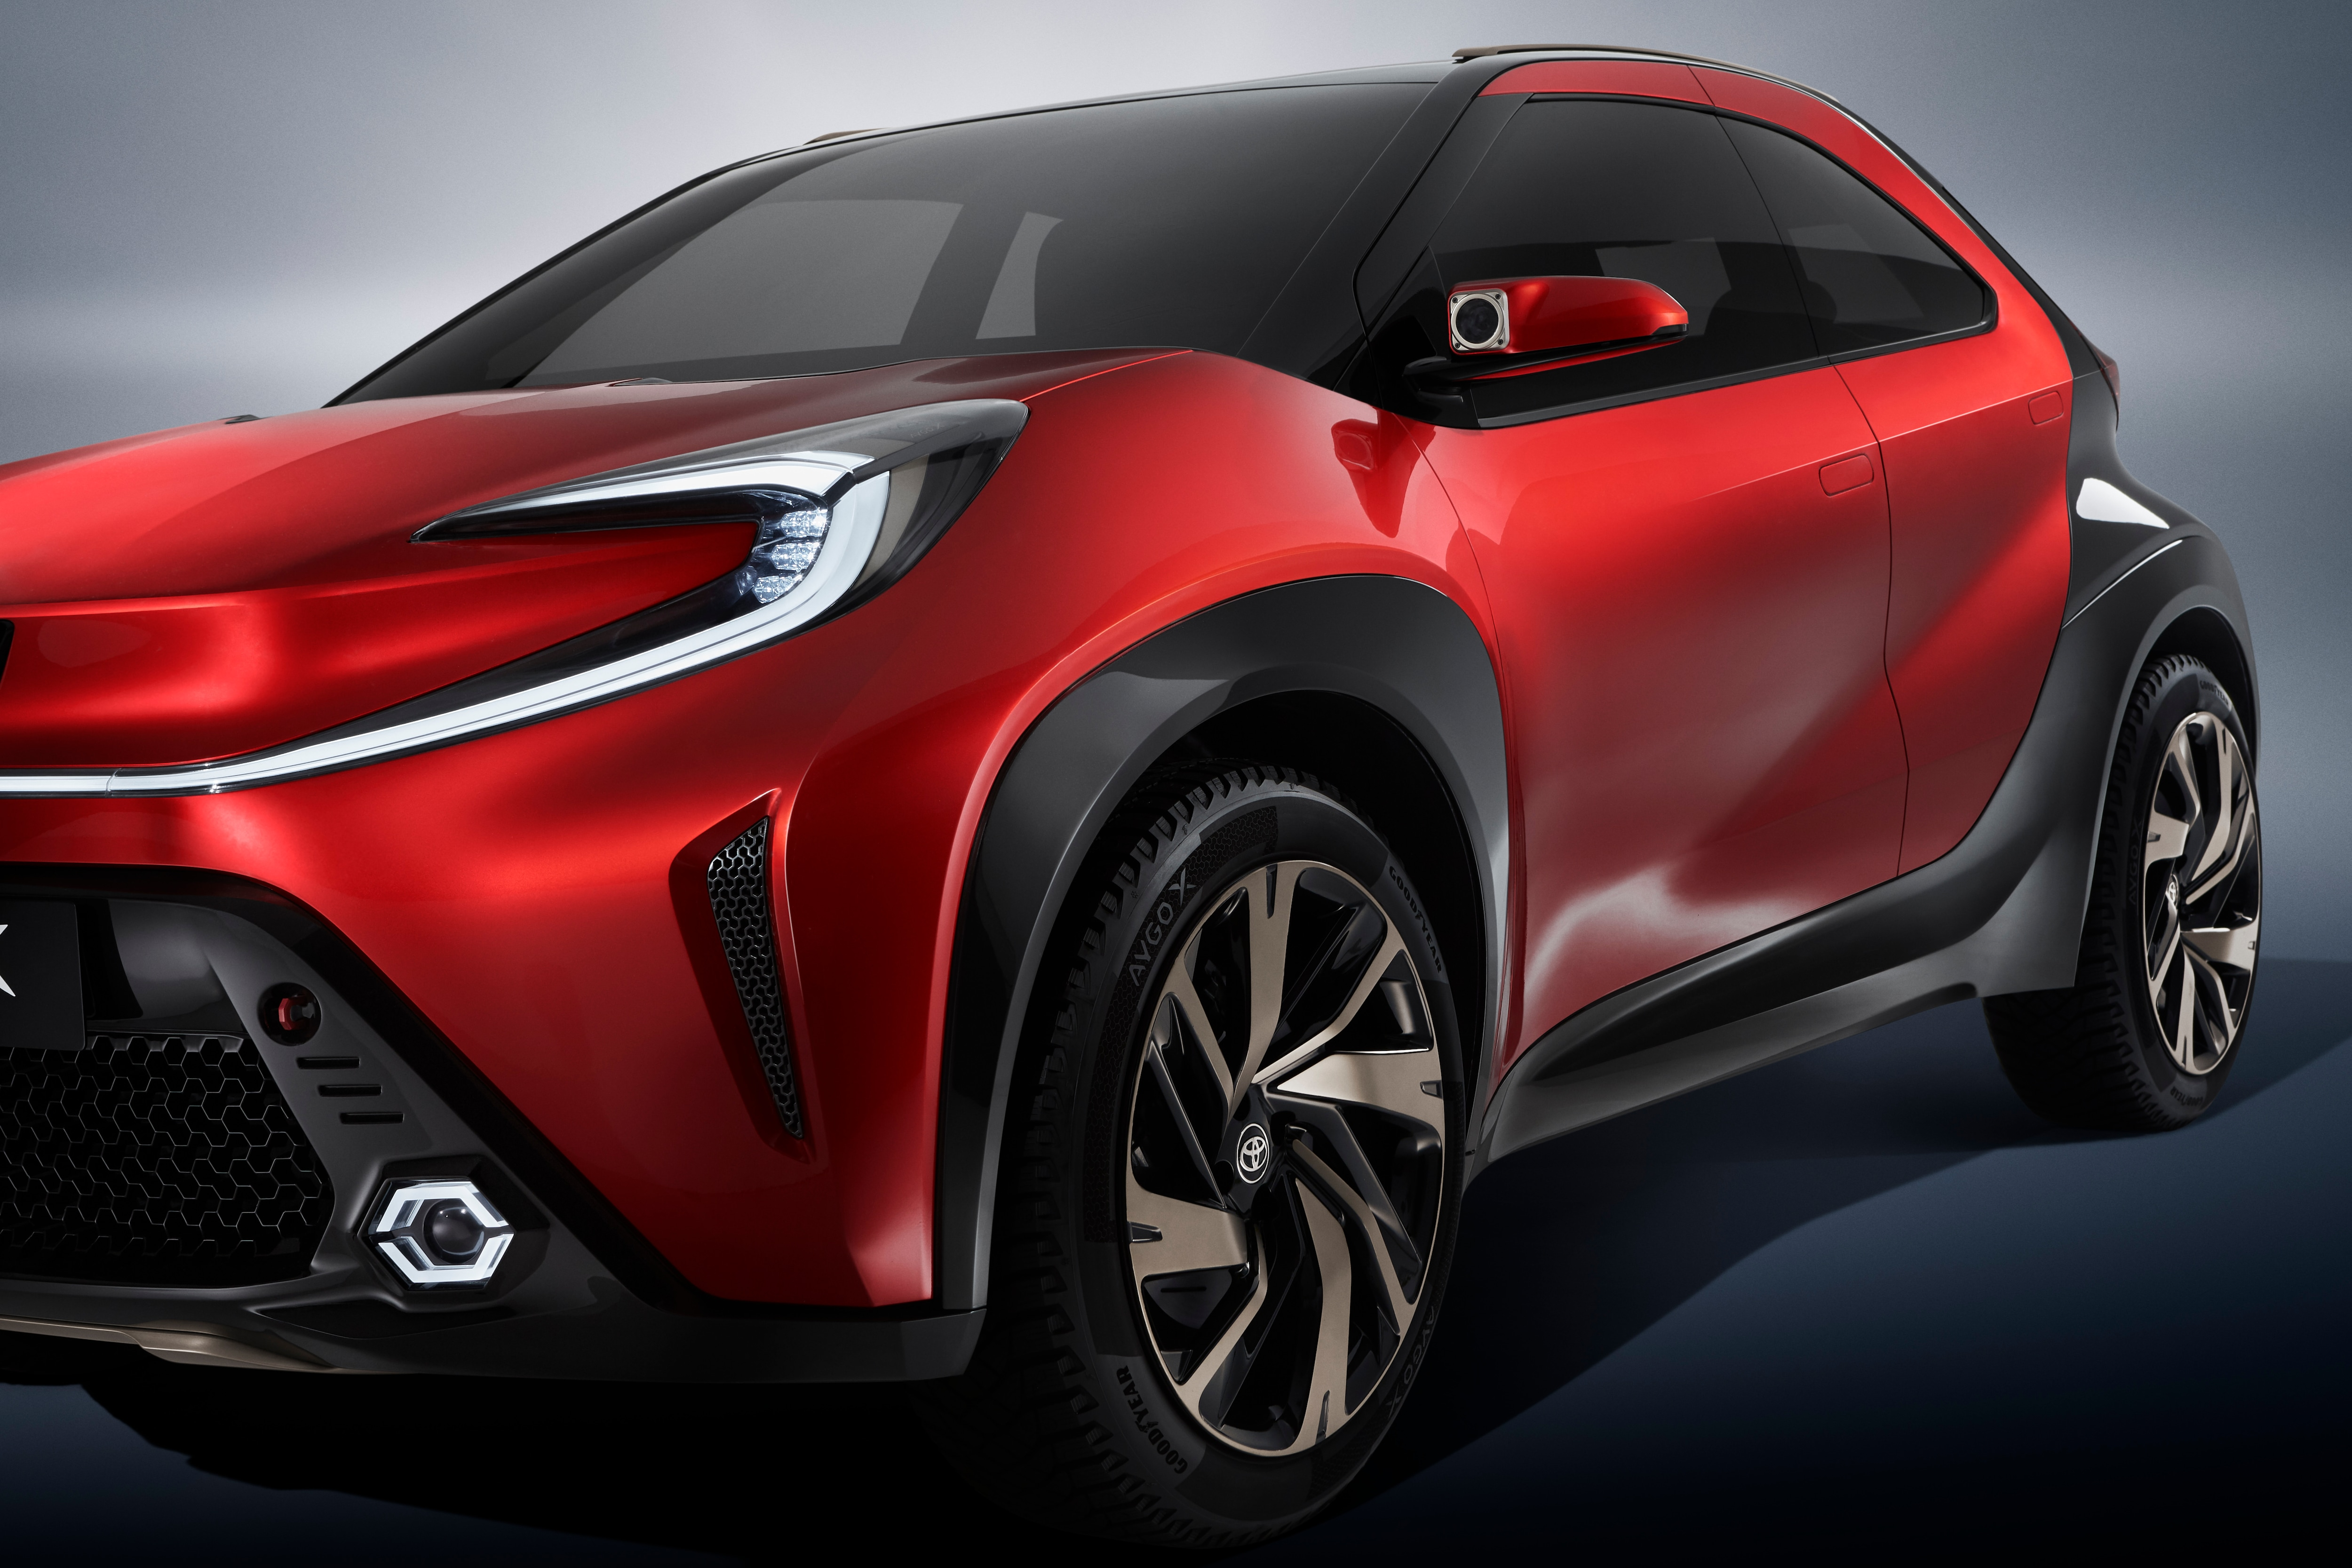 The concept car features big wheels and thick fenders that make it look like a small crossover. The mirrors on both sides come with added action cameras and Toyota says they are perfect for capturing and sharing exploration moments.